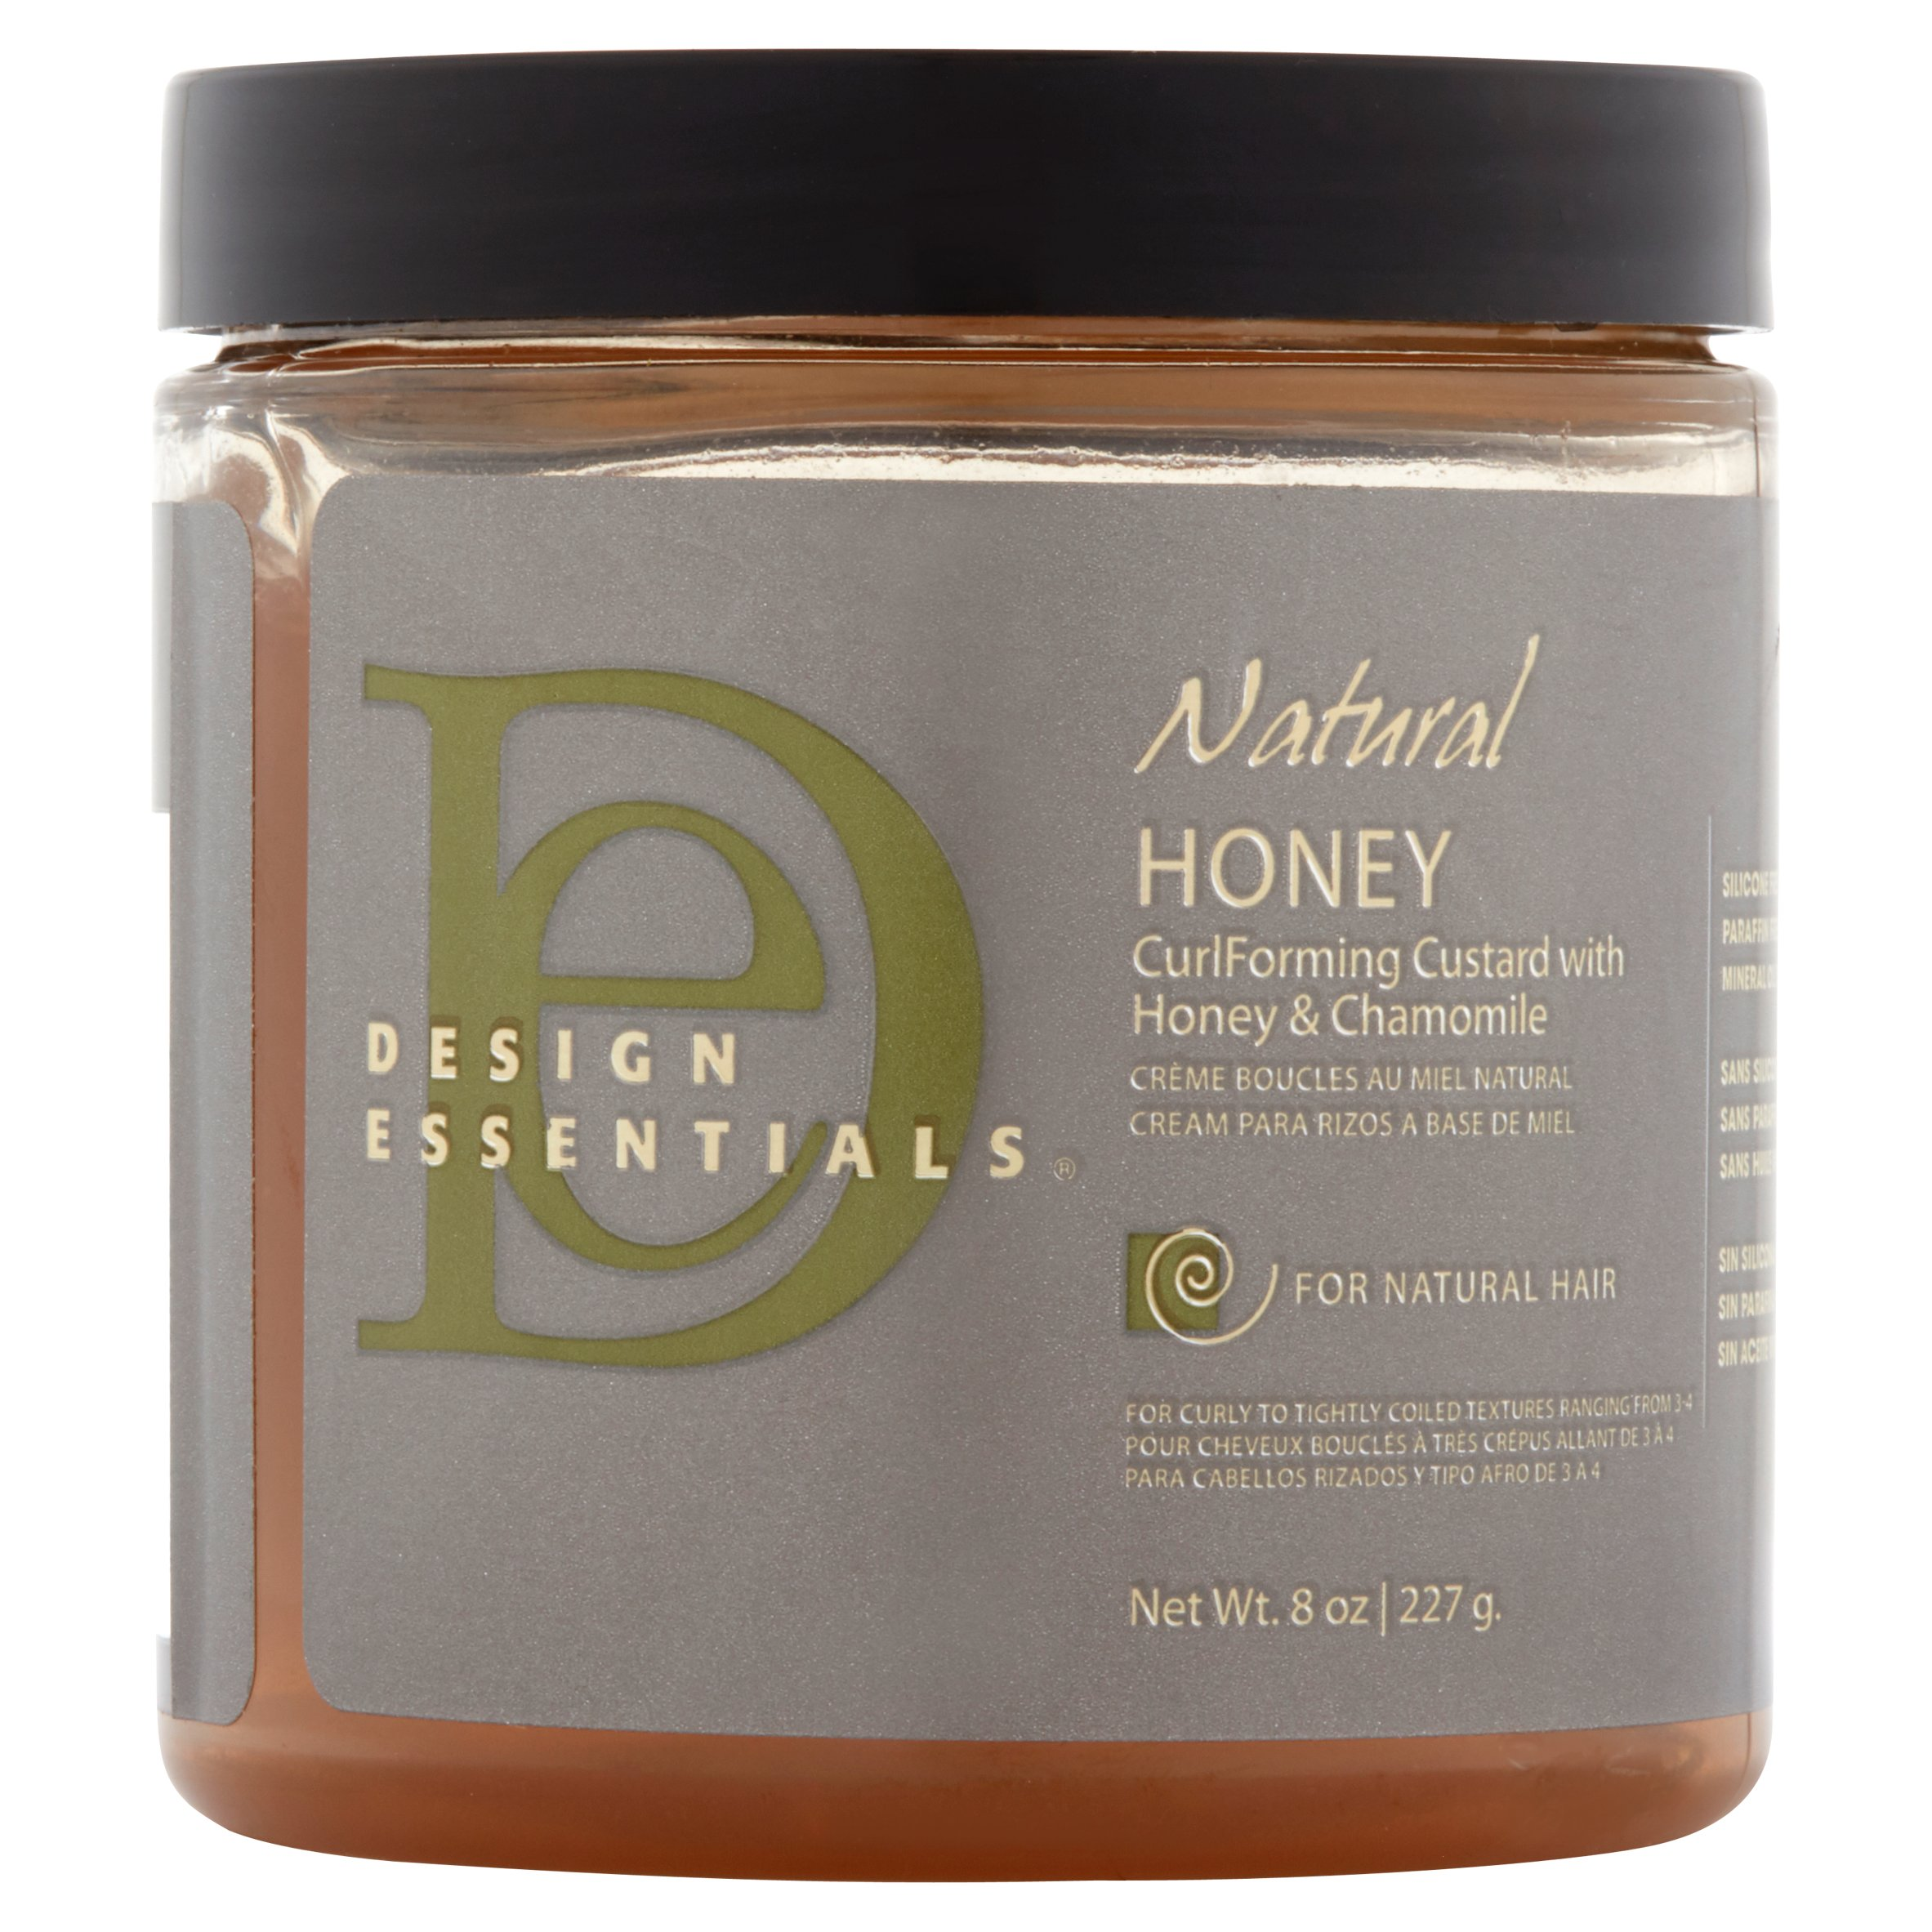 Design Essentials Natural Honey Curl Forming Custard with Honey & Chamomile for Natural Hair, 8.0 OZ